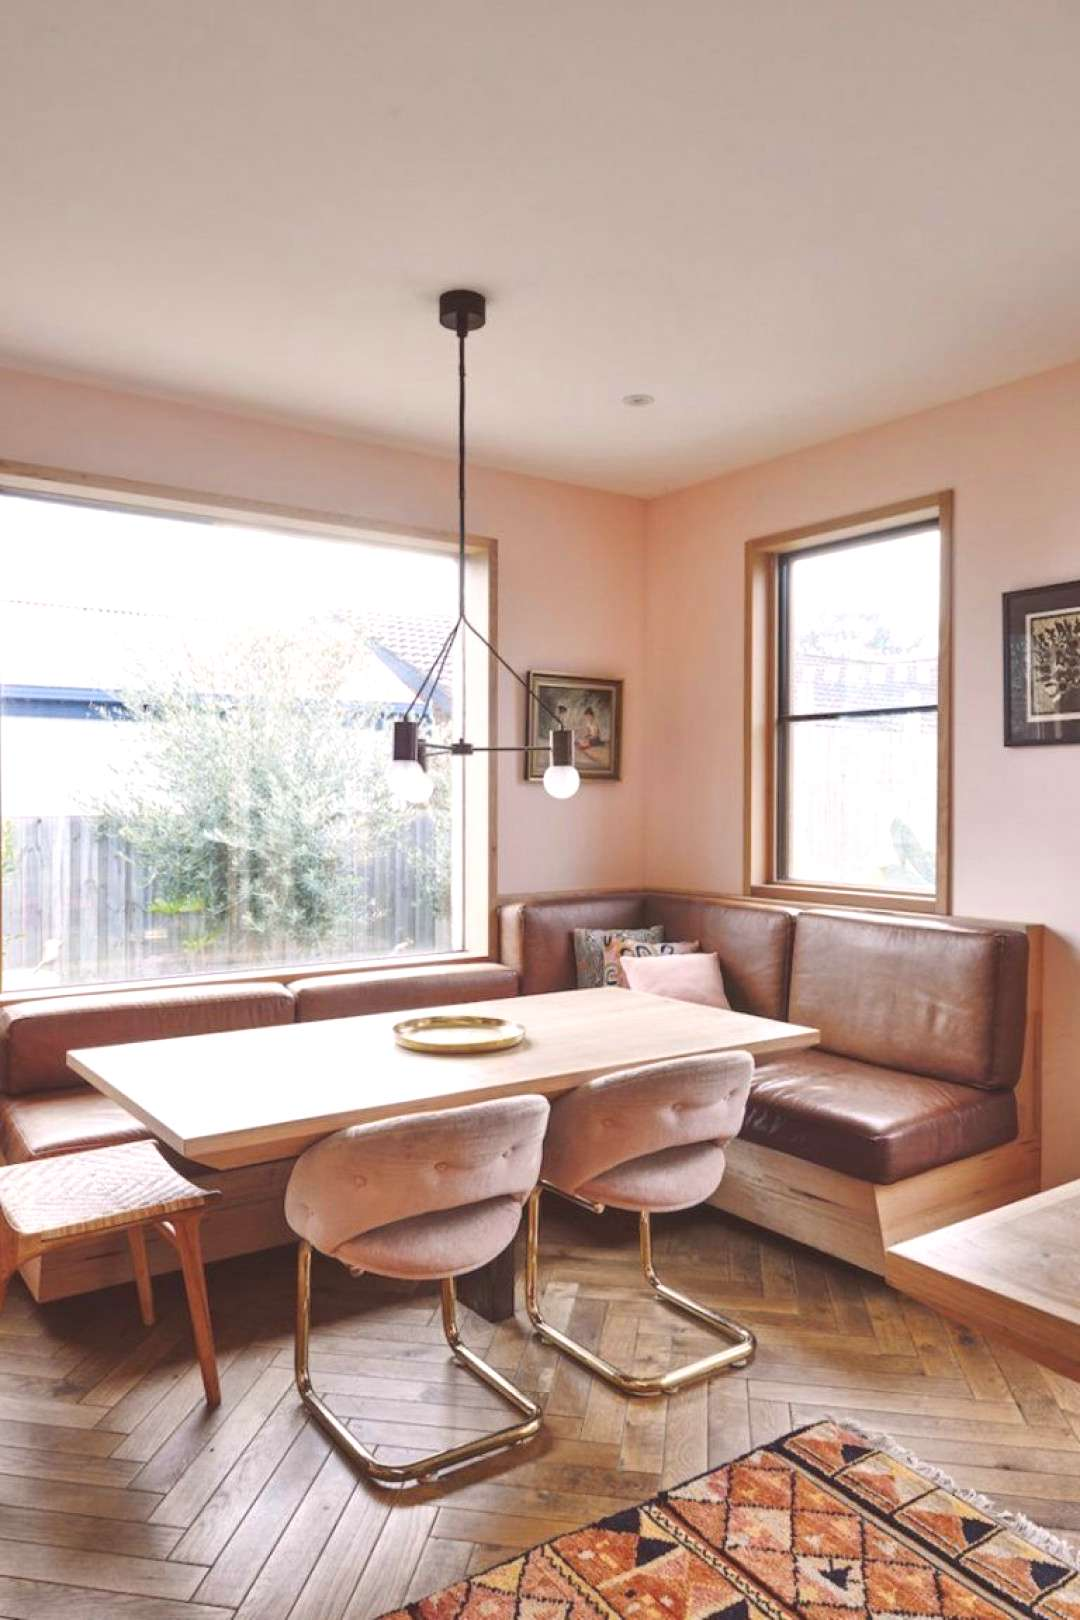 10 Breakfast Nooks You'll Want to Curl Up In and Never Leave#breakfast